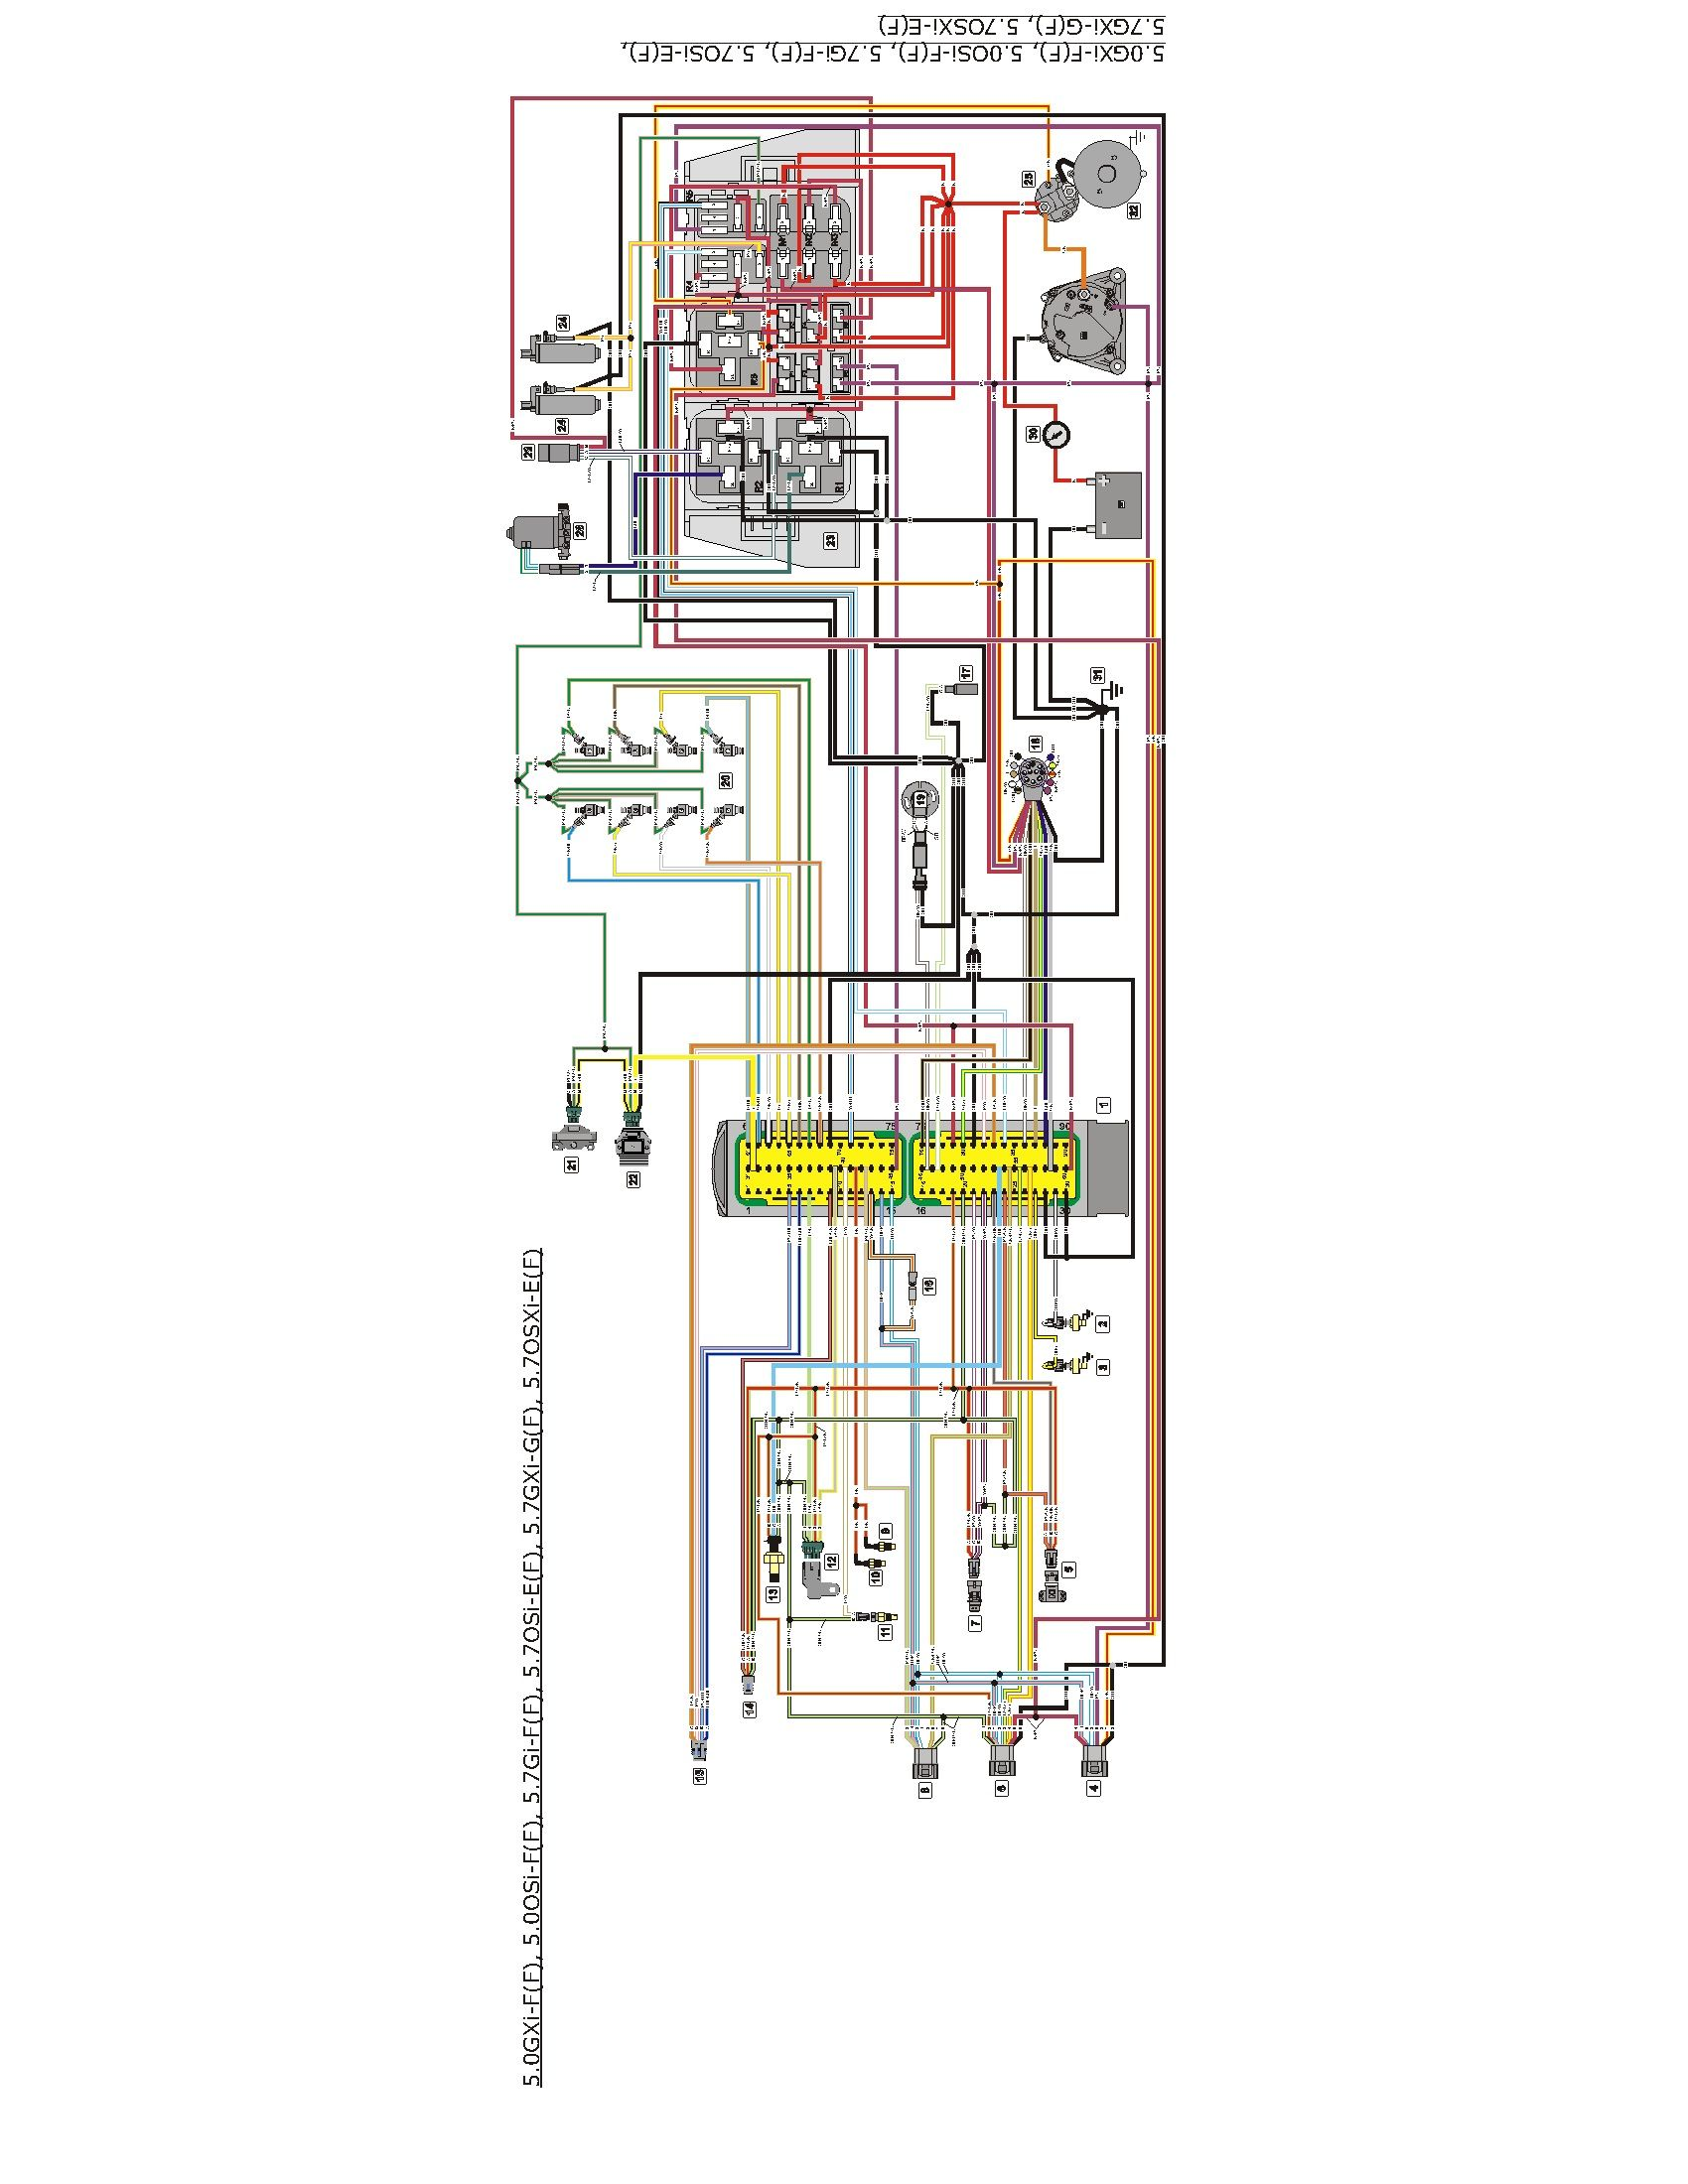 38e0106861e0fe47e508530985b32839 volvo penta 5 7 wiring diagram simple boat wiring diagram \u2022 free volvo penta 5.7 gxi wiring diagram at mr168.co